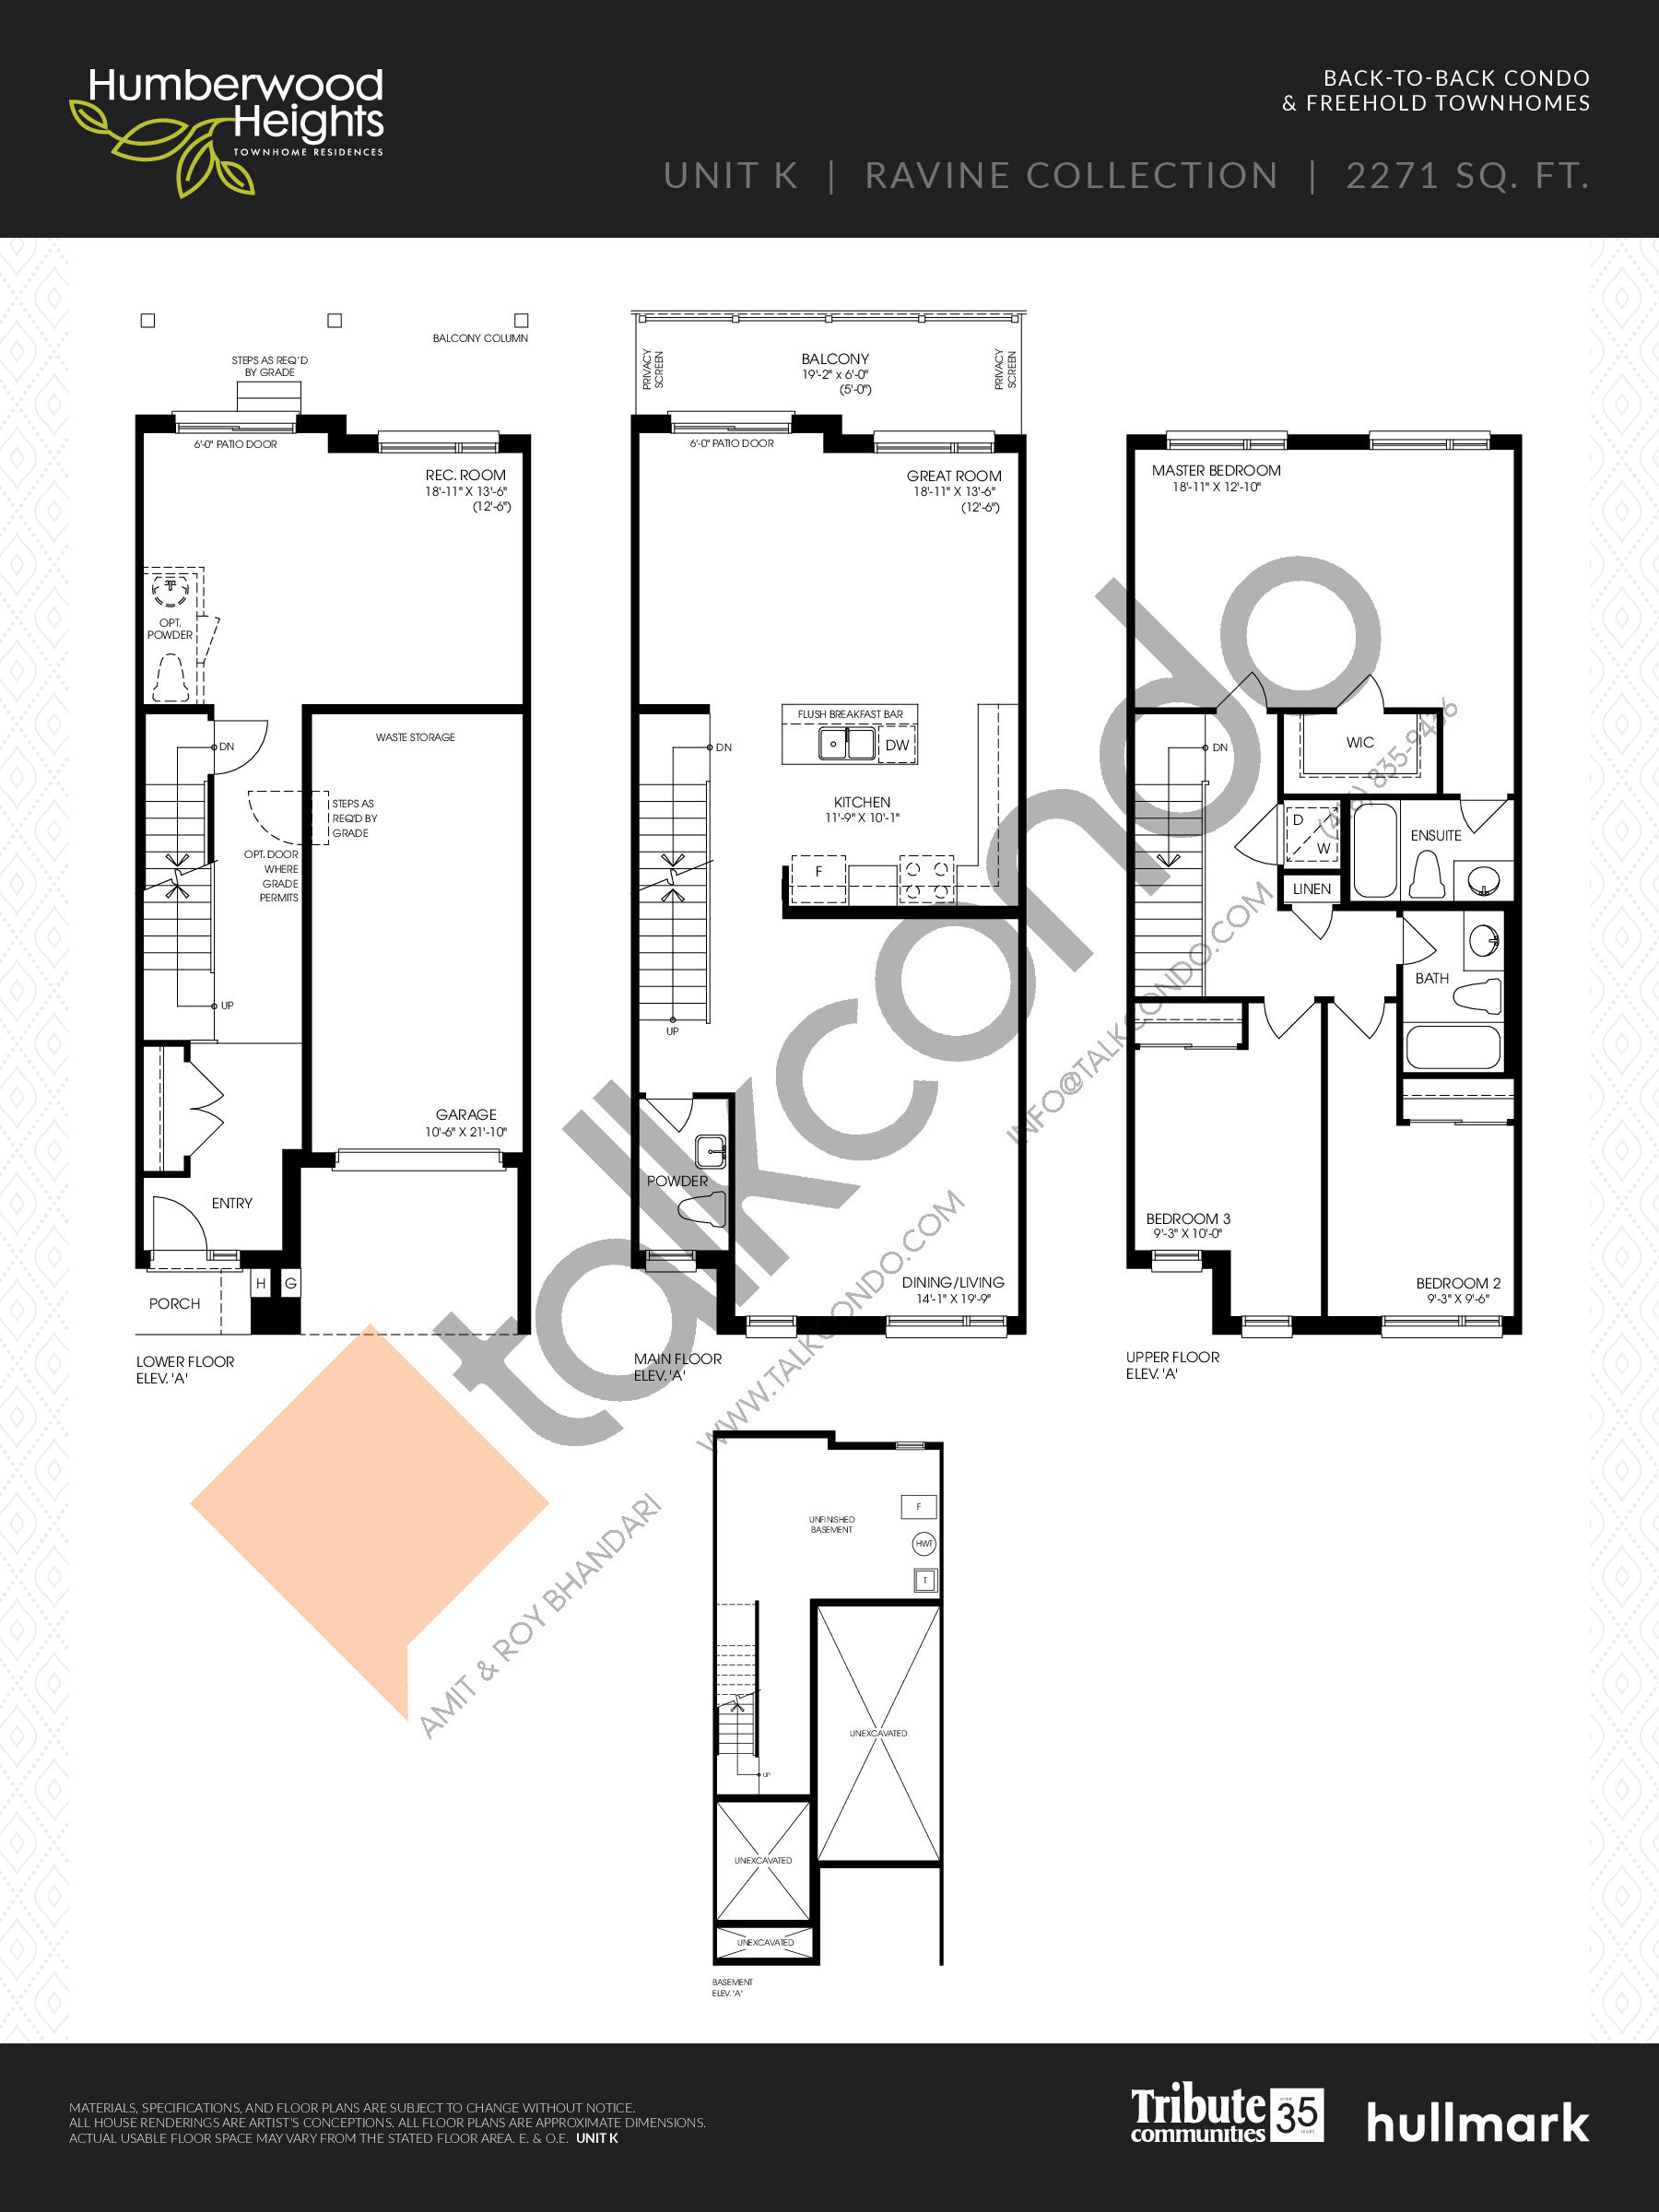 Unit K - Ravine Collection Floor Plan at Humberwood Heights - 2271 sq.ft